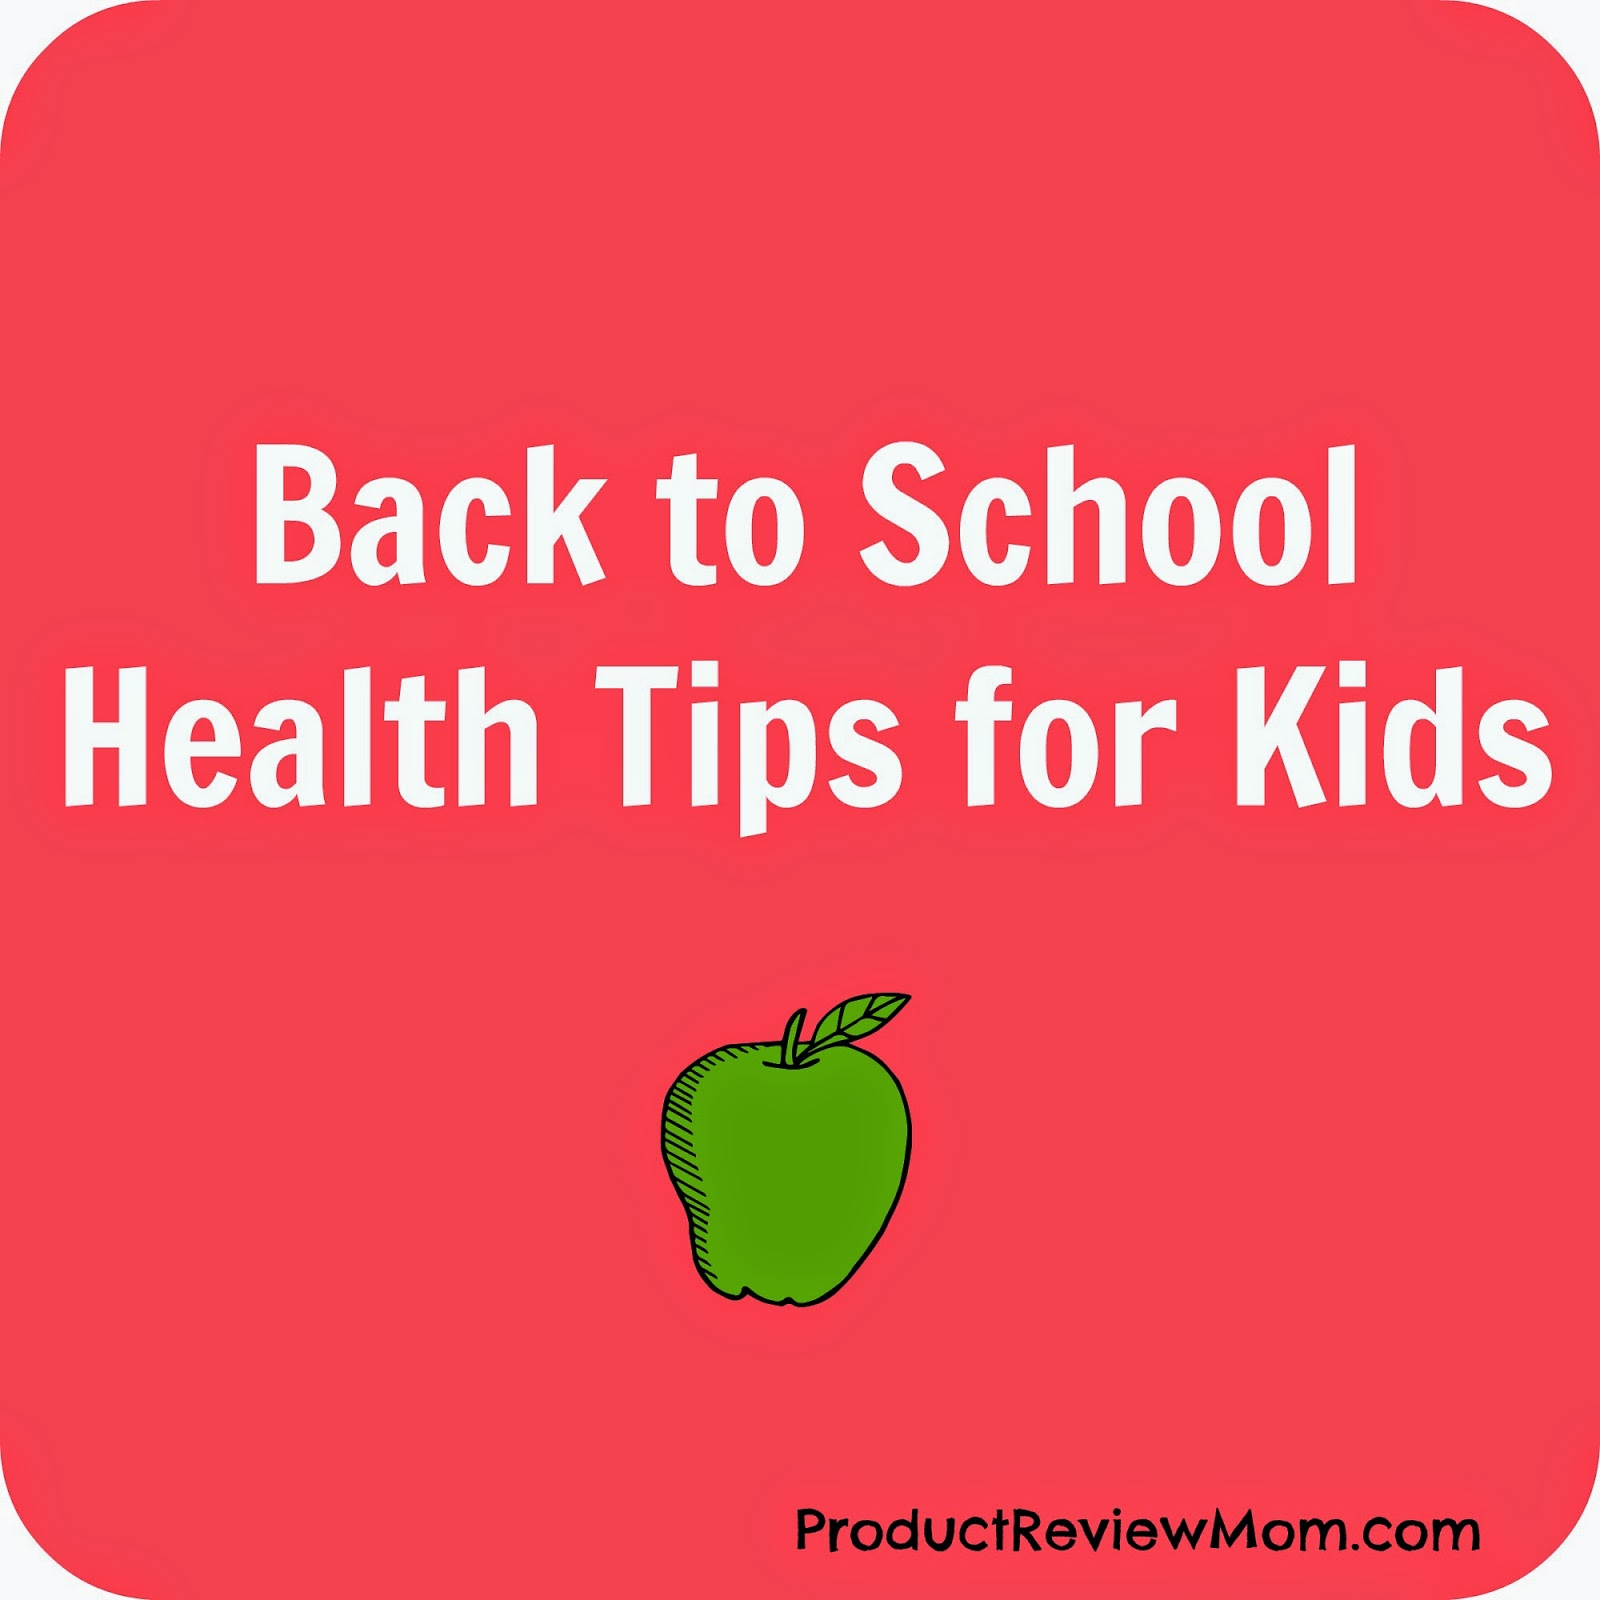 Back to School Health Tips for Kids #BacktoSchool via www.Productreviewmom.com